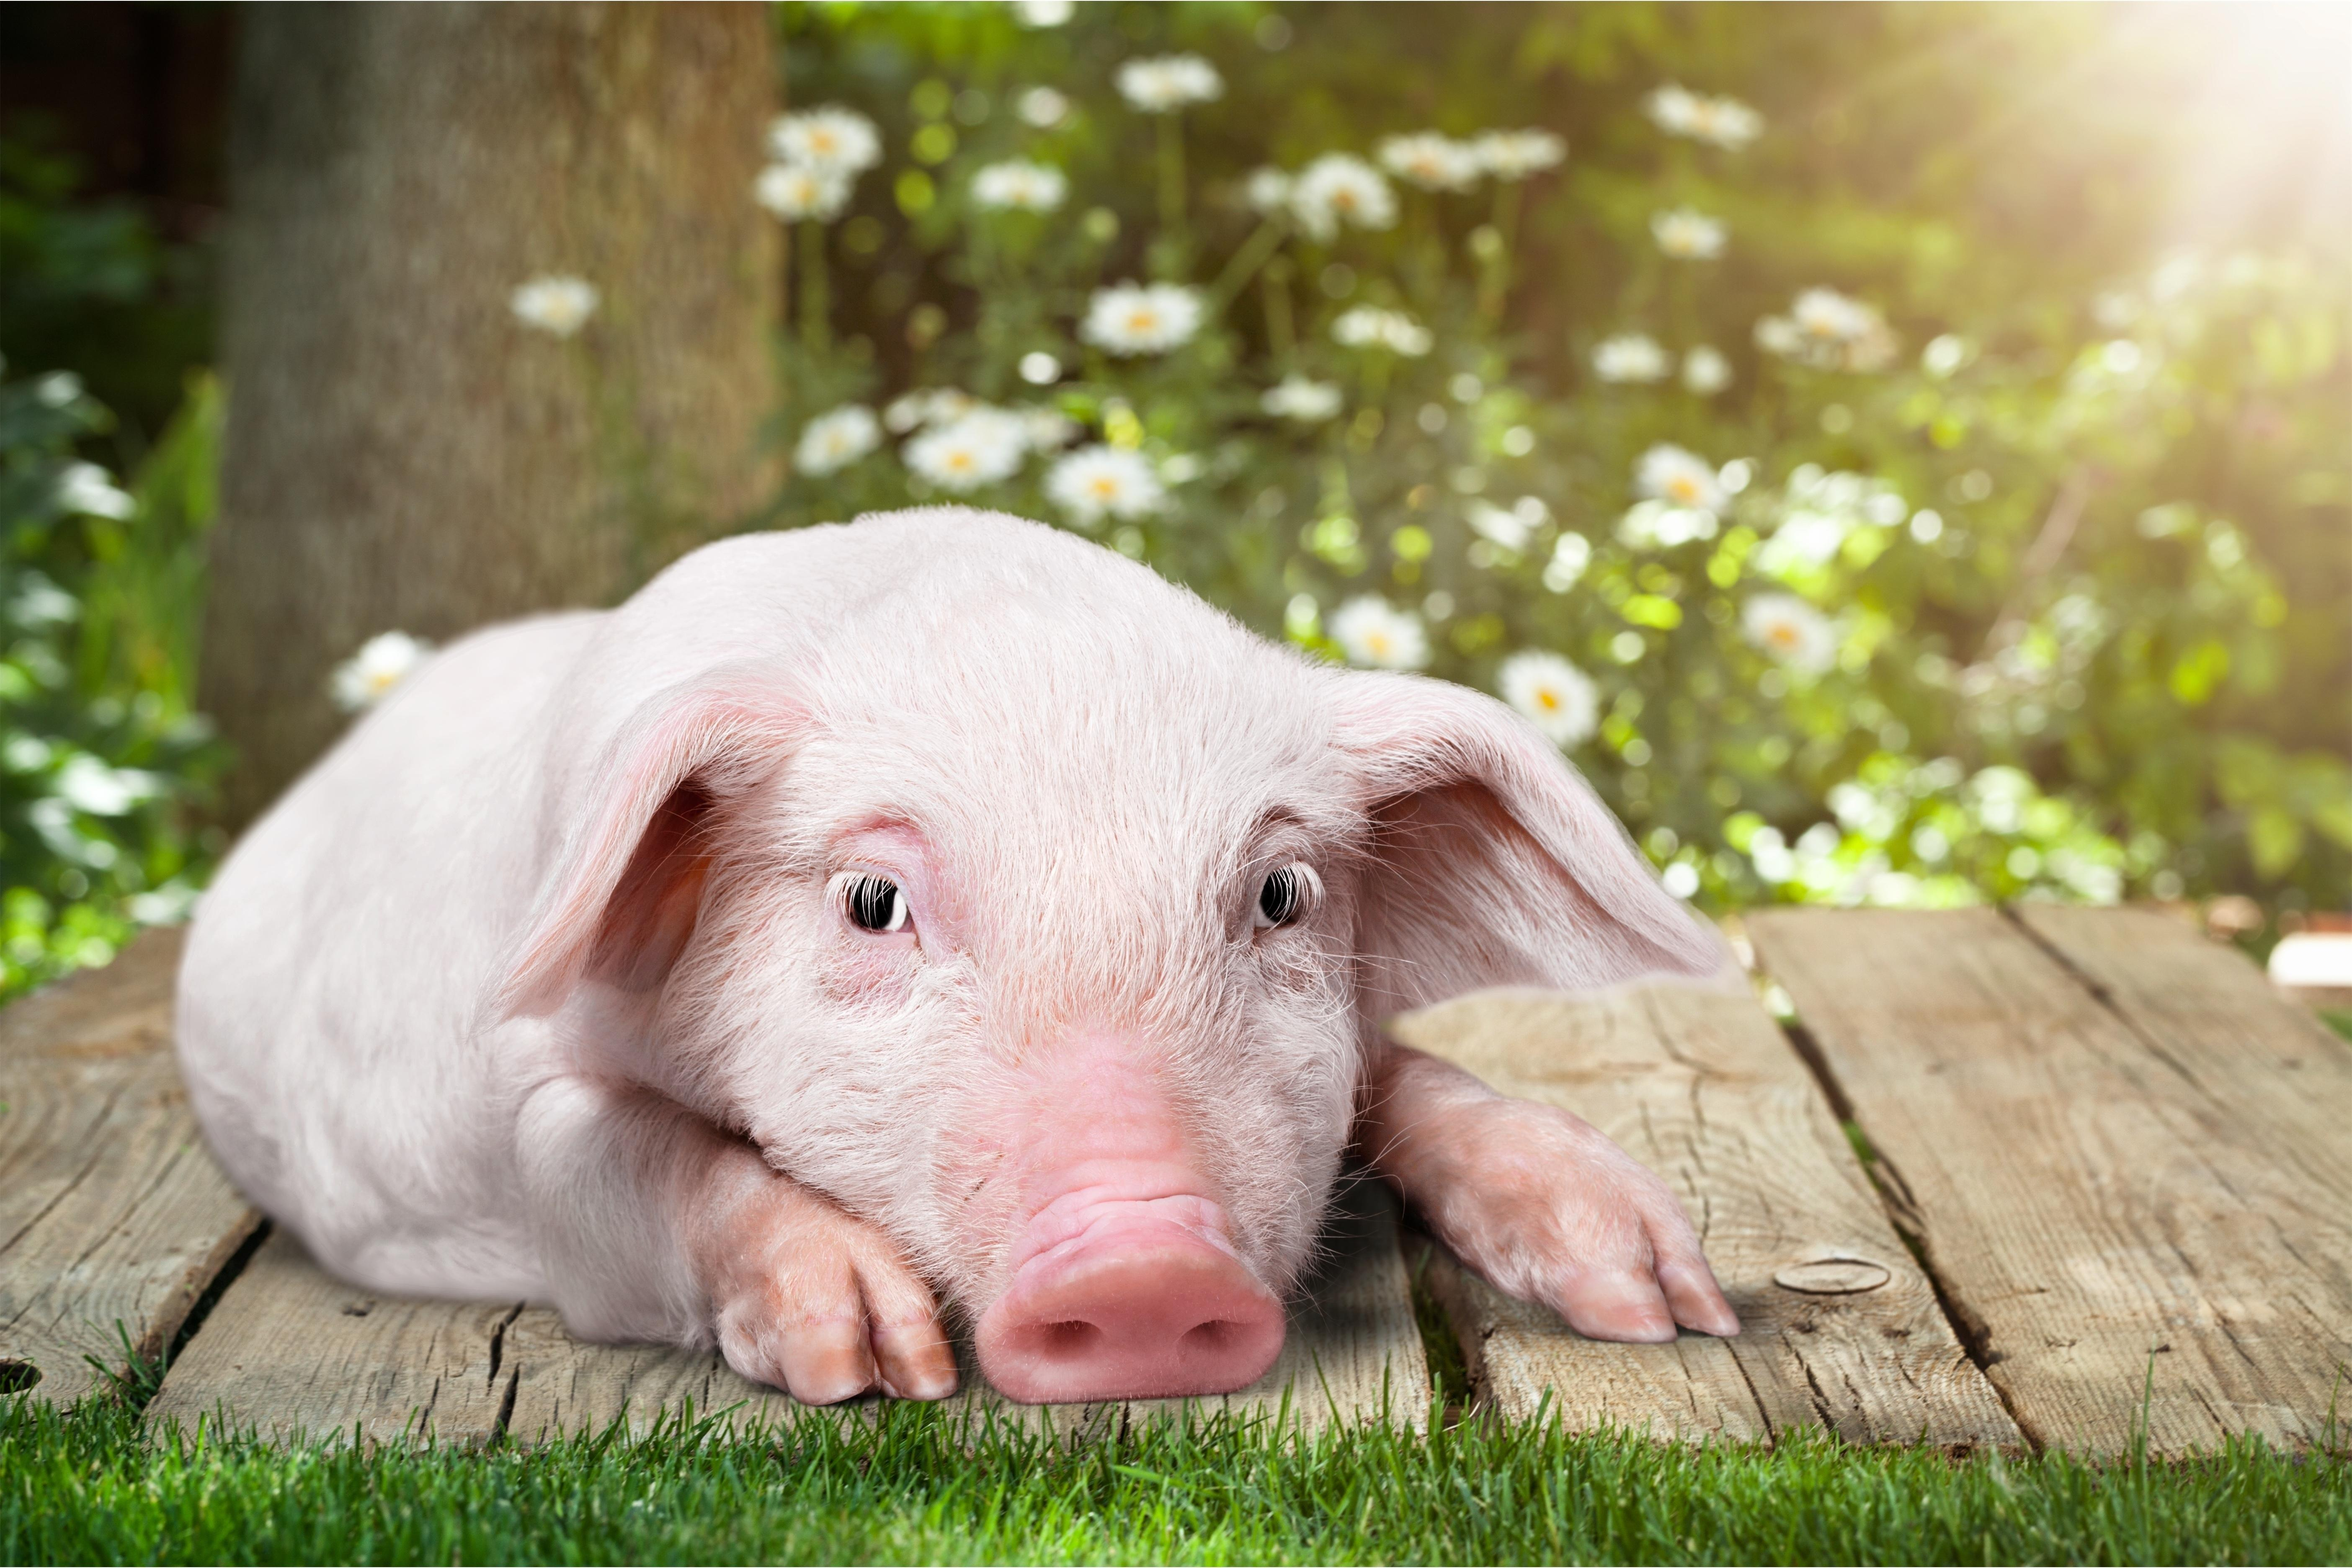 pig farm animals animal piggy cute happy friends background pink saying stop agriculture wooden garden livestock industry overly poultry wattagnet